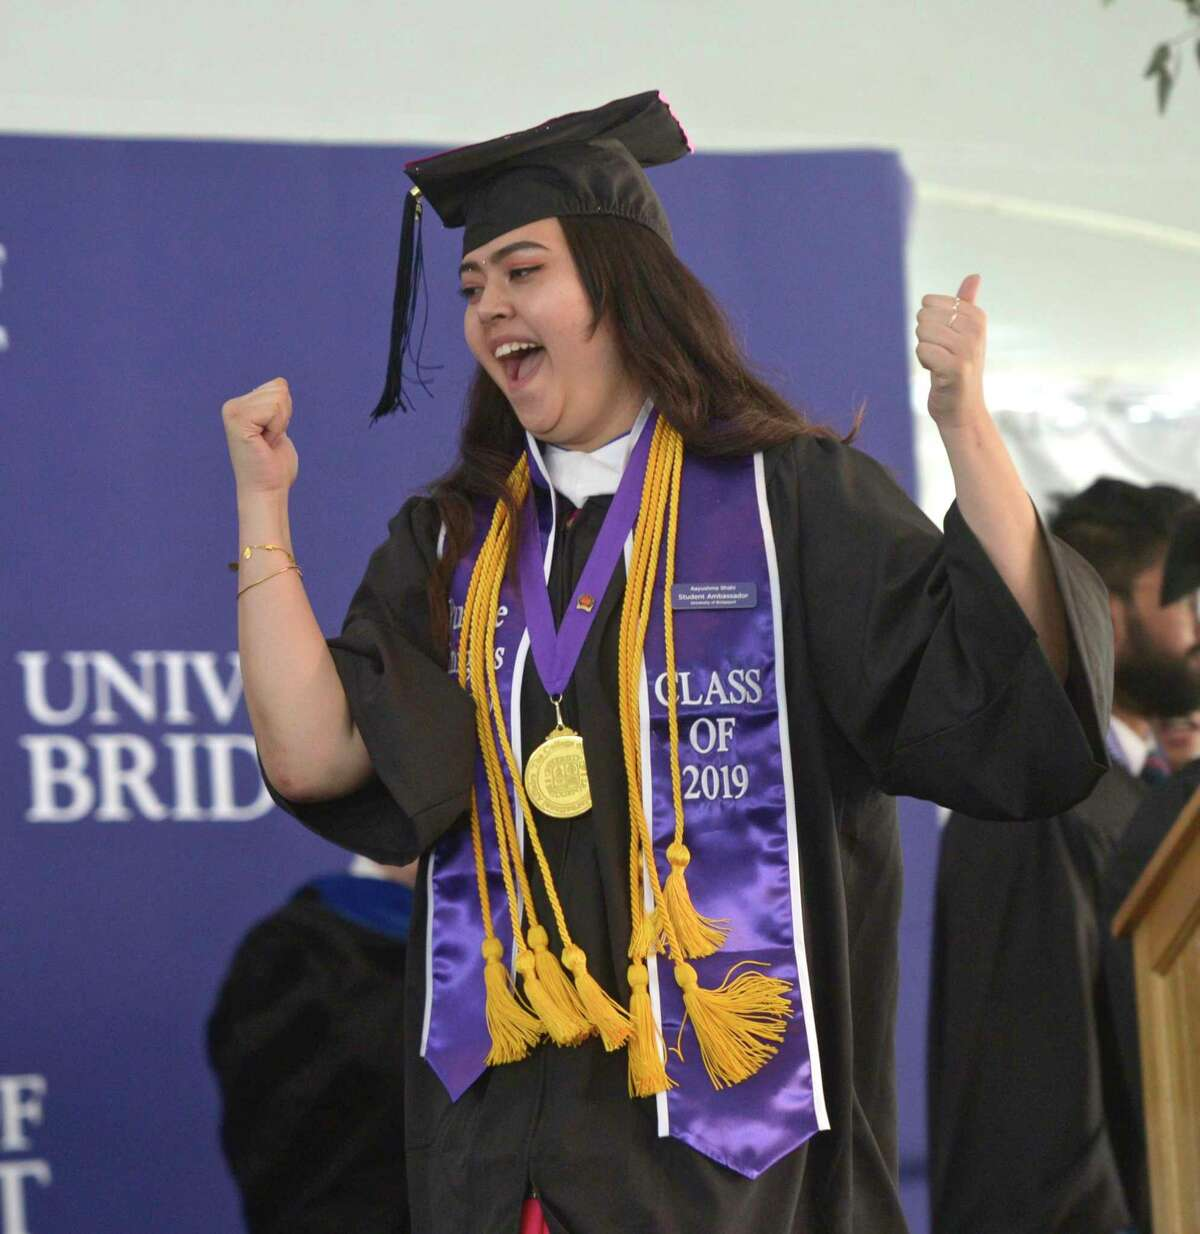 Photographs from the University of Bridgeport 2019 Undergraduate Commencement Ceremony in Marina Park, Bridgeport, Conn, Saturday morning, May 18, 2019.